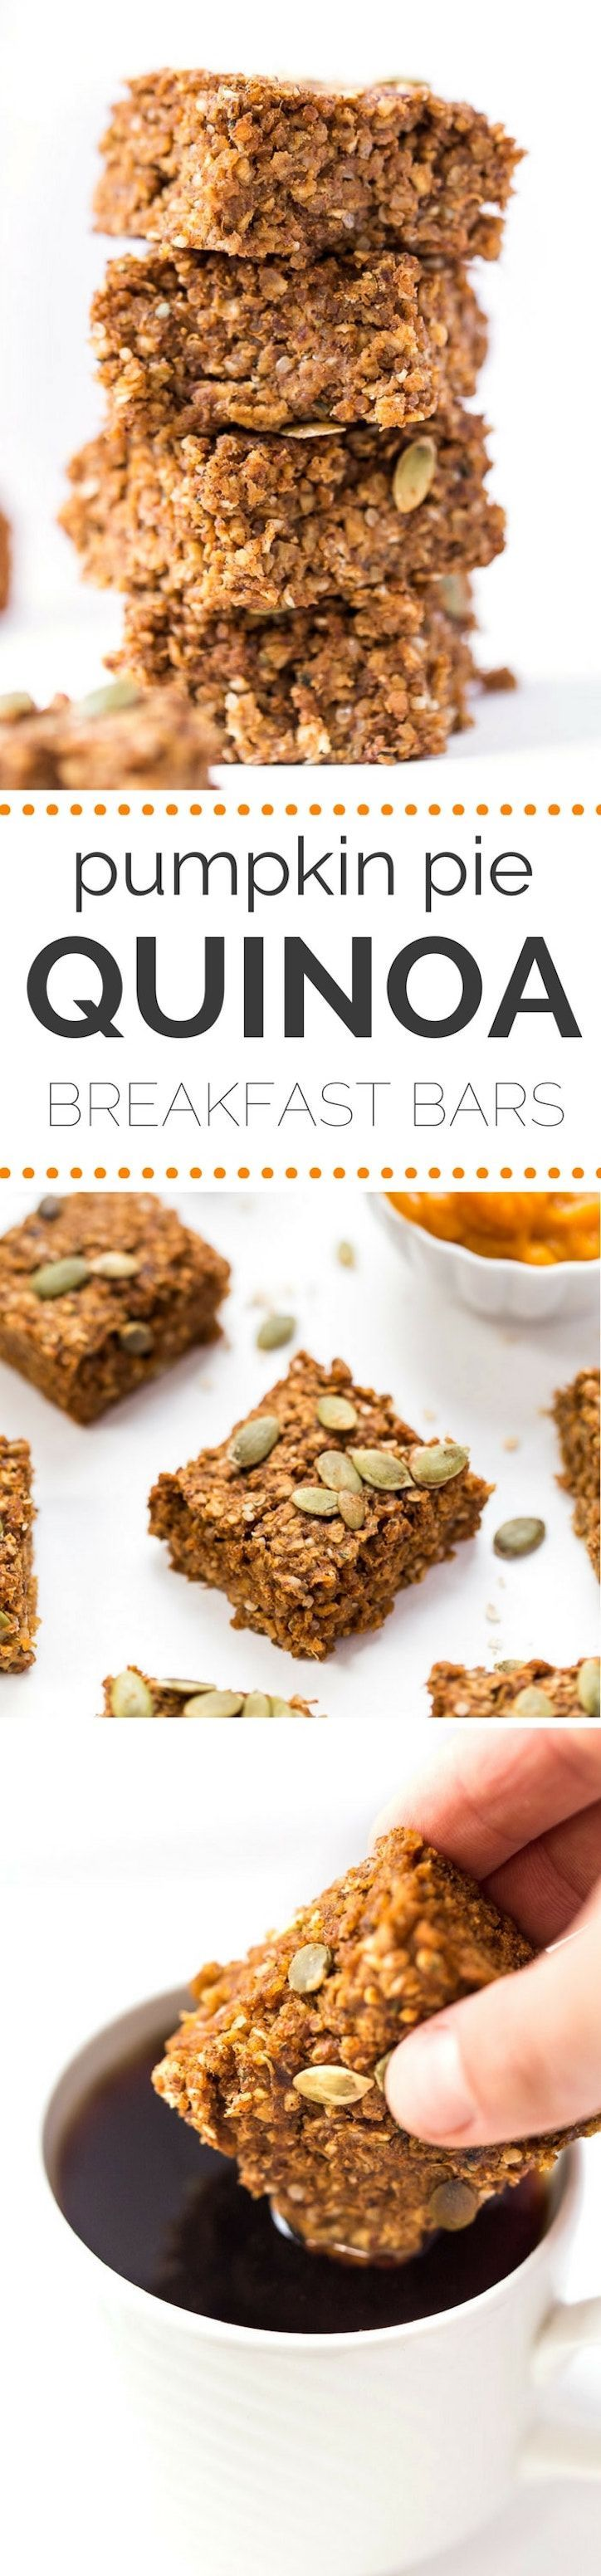 Gluten Free Pumpkin Quinoa Breakfast Bars (V, GF): a one bowl recipe for simply delicious pumpkin quinoa breakfast bars packed with protein to kick start your morning!